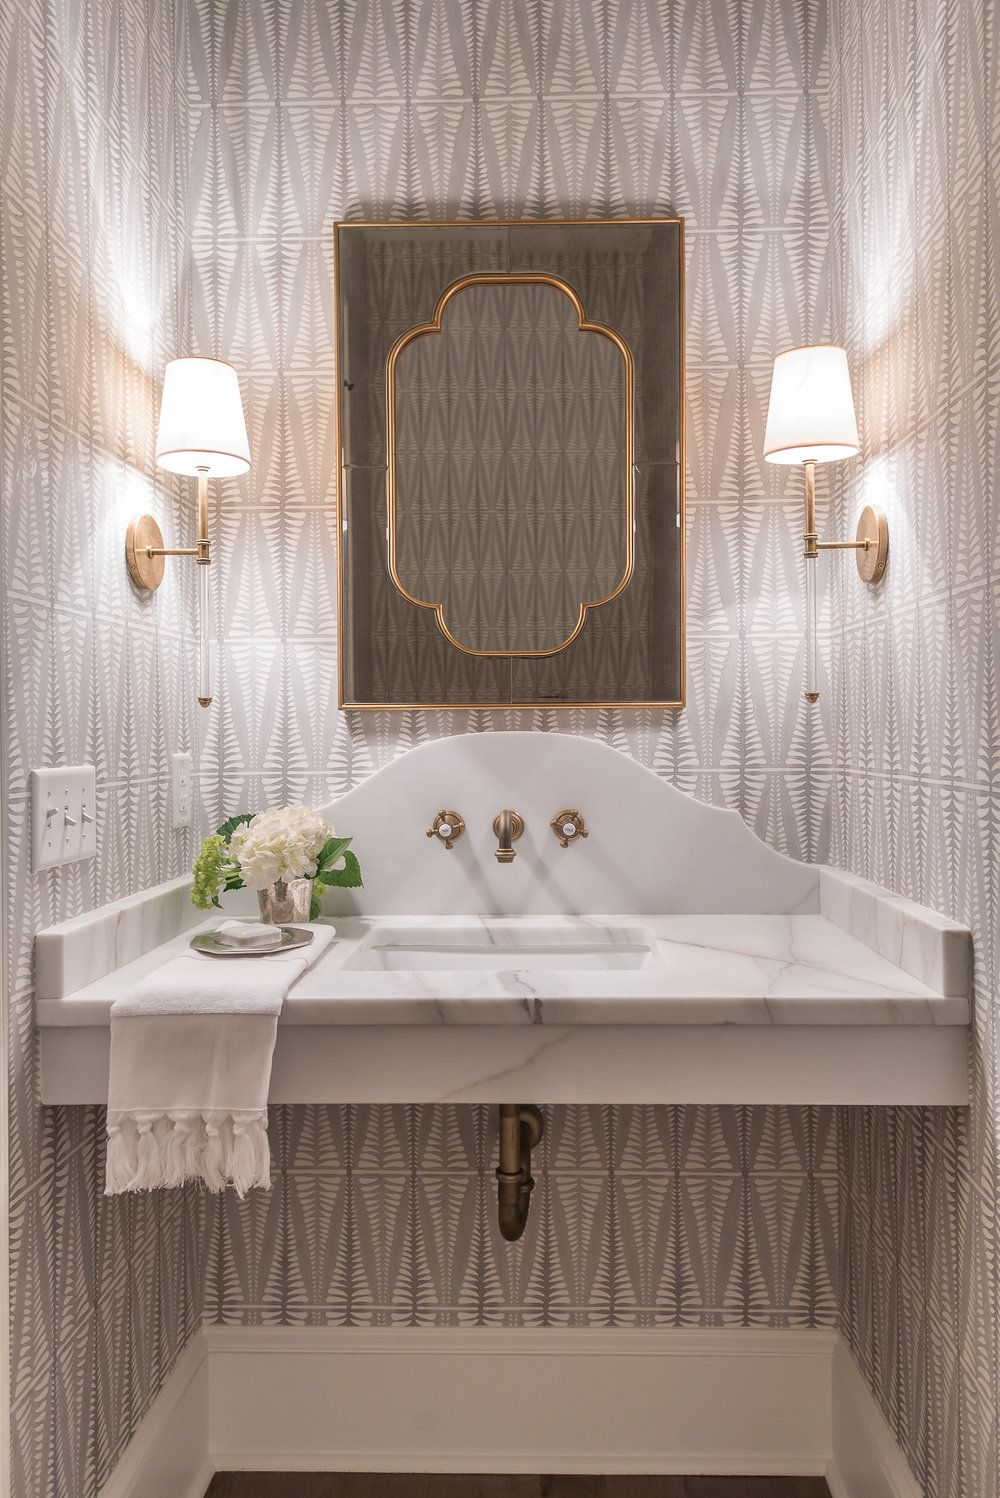 2 Vanities For Master With Shaped Marble And Wall Faucet Luxury